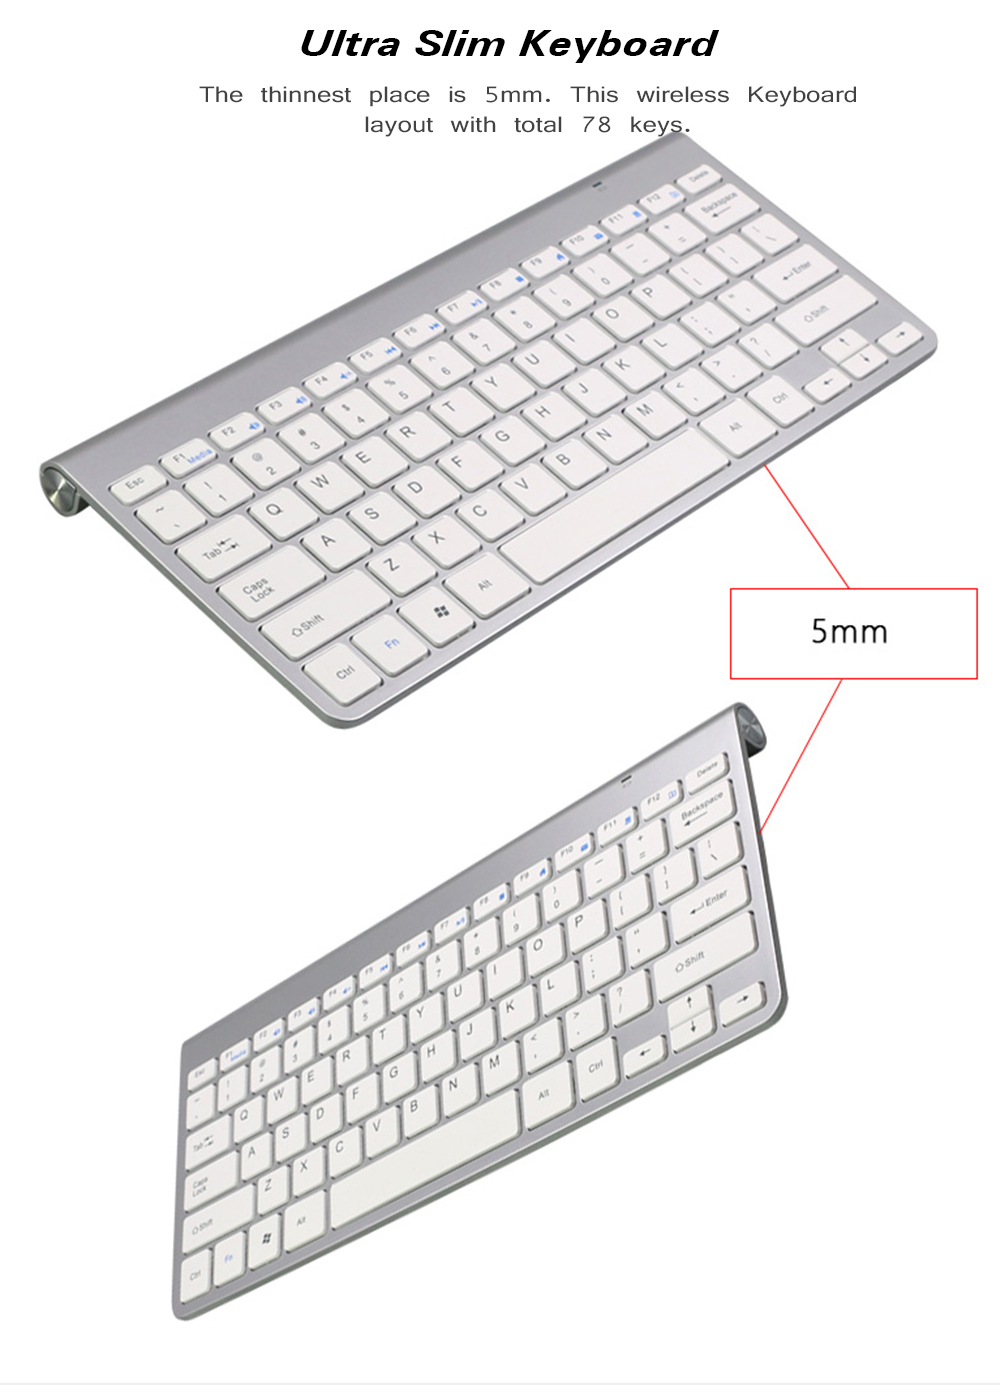 Hyt 01 24ghz Wireless Keyboard And Mouse Set 1597 Free Hk 6500 Combo Ergonomic Gaming Rose